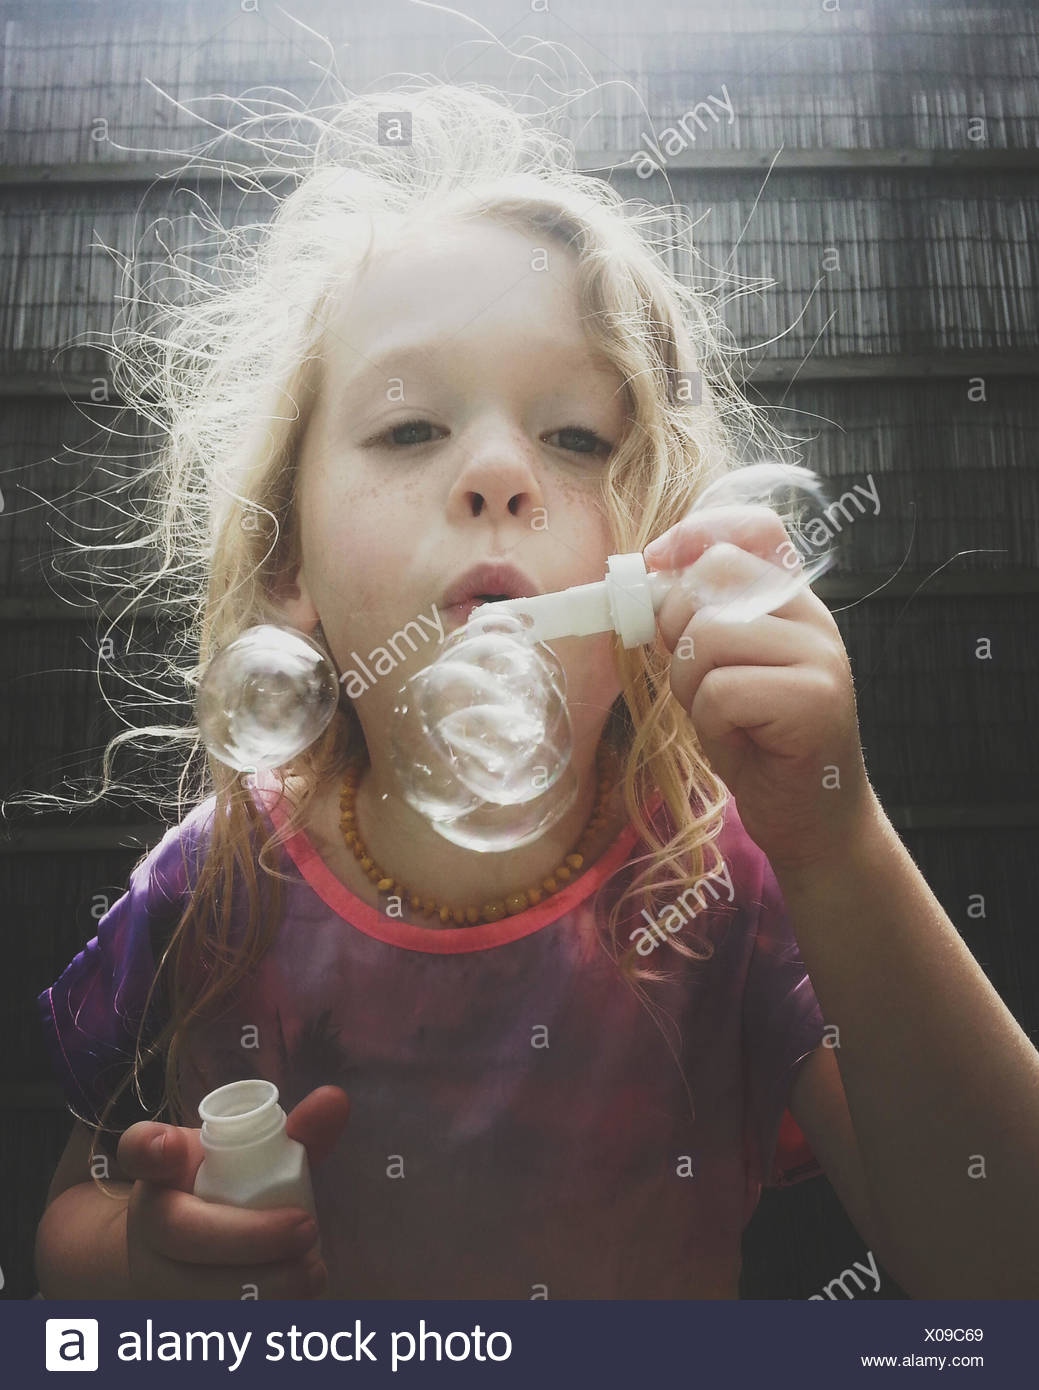 Portrait of a Girl blowing soap bubbles - Stock Image